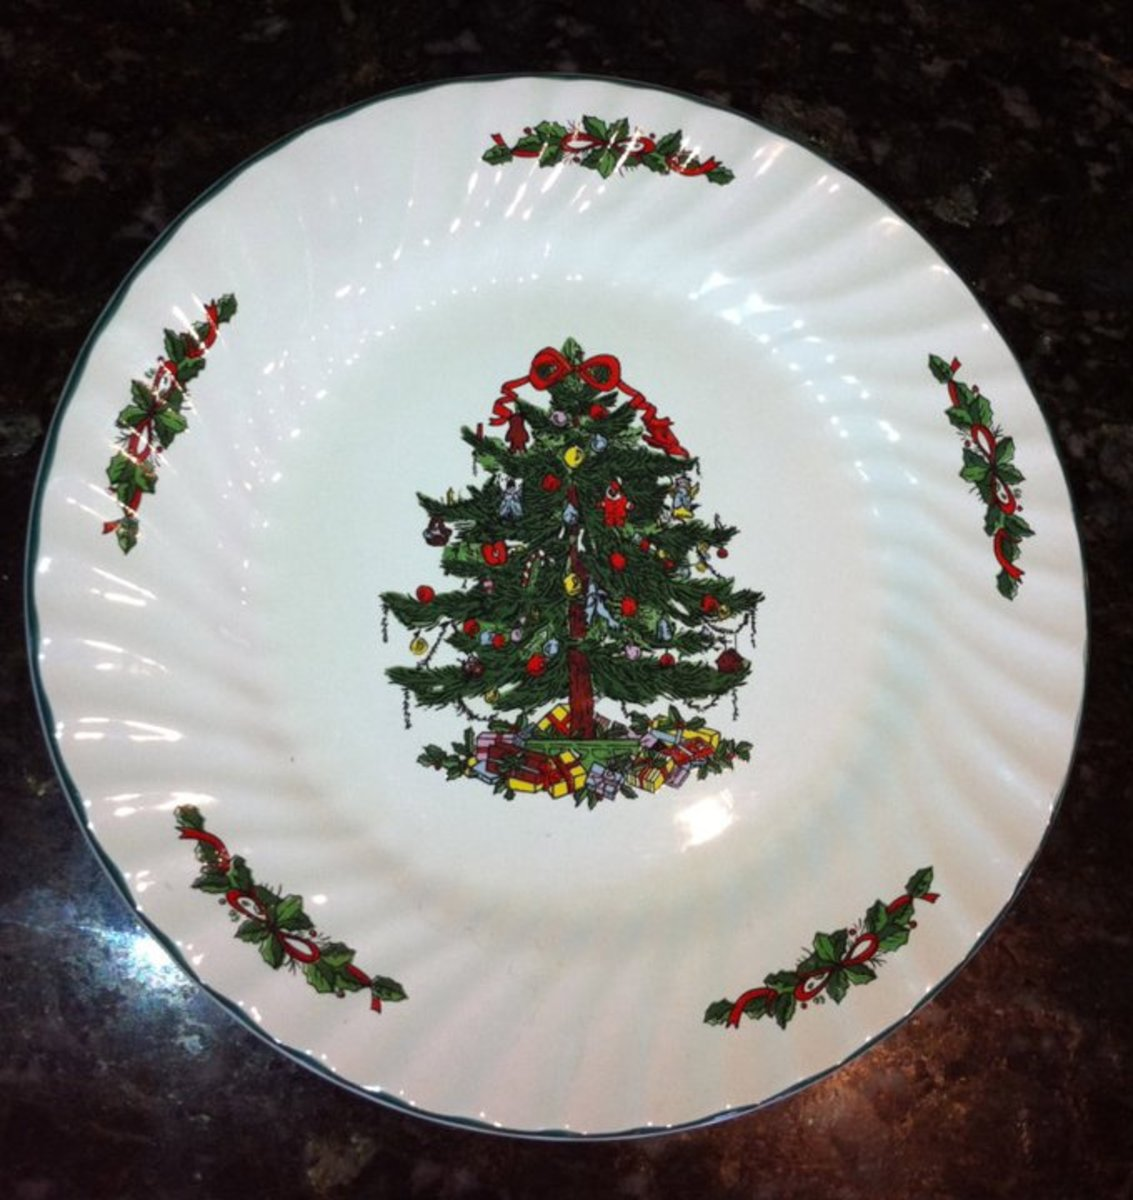 Christmas Dinner Plate Designs and Ideas